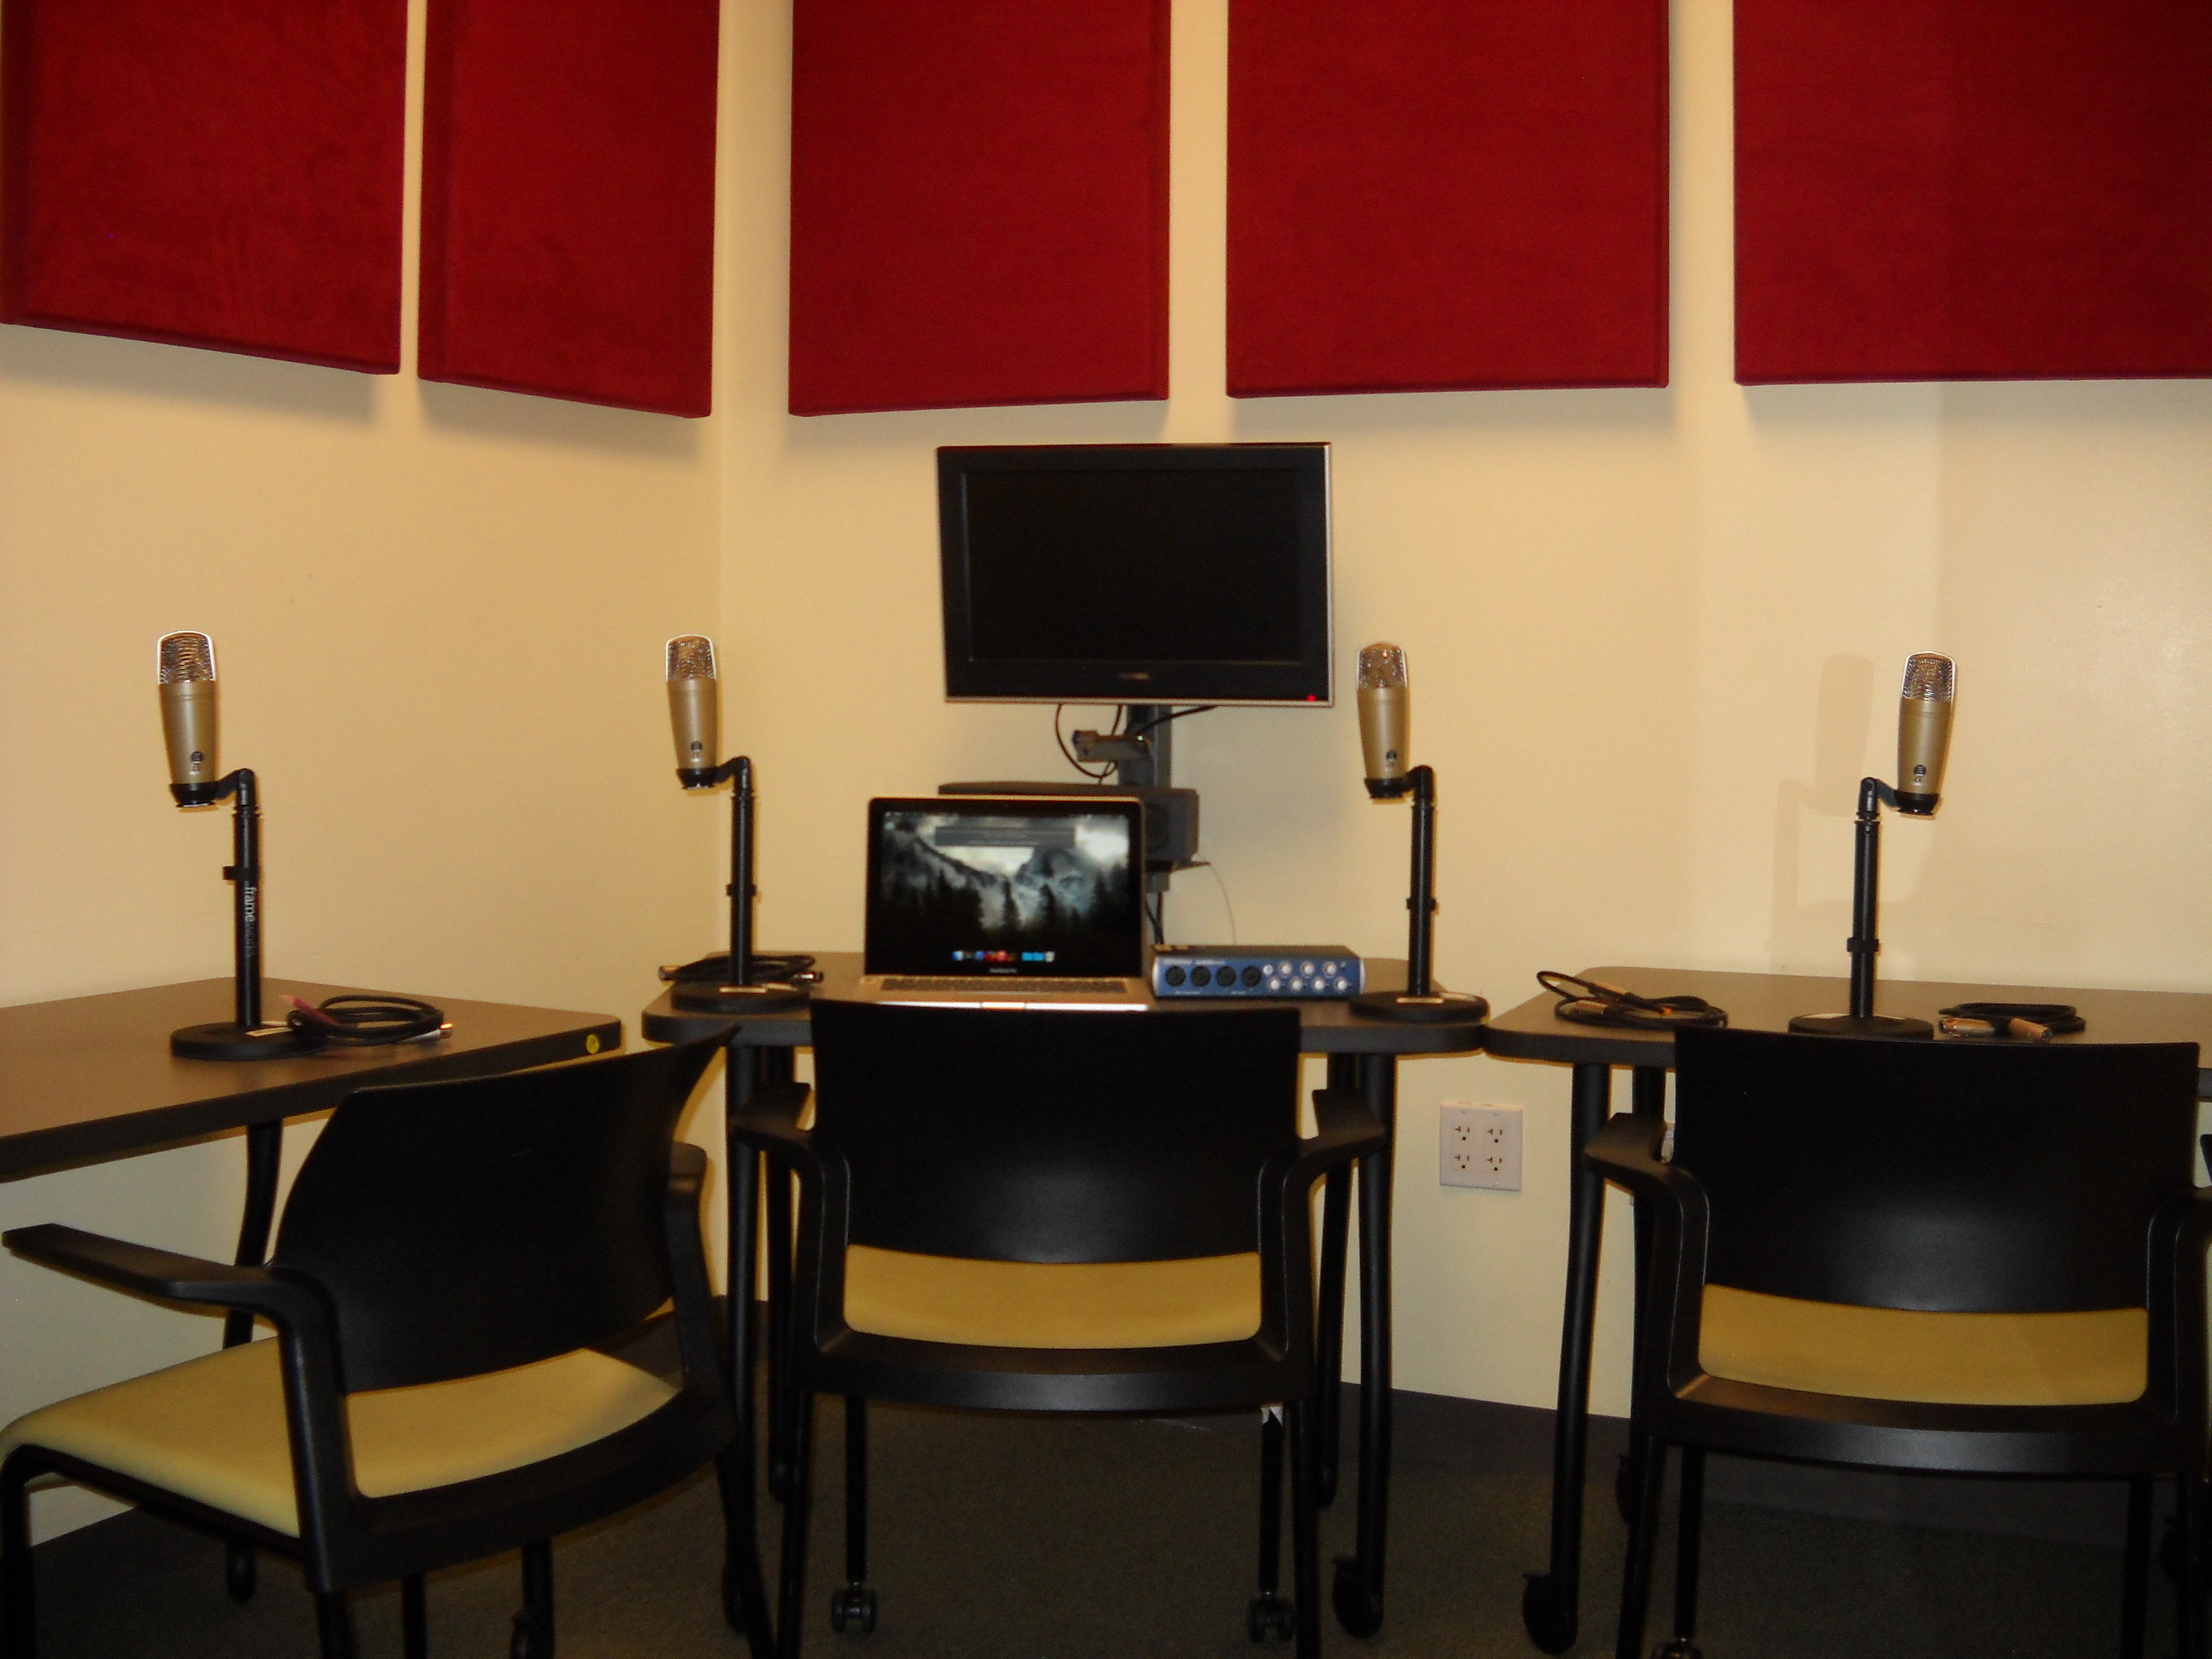 Image of room with chairs, computer monitor, and podcasting equipment